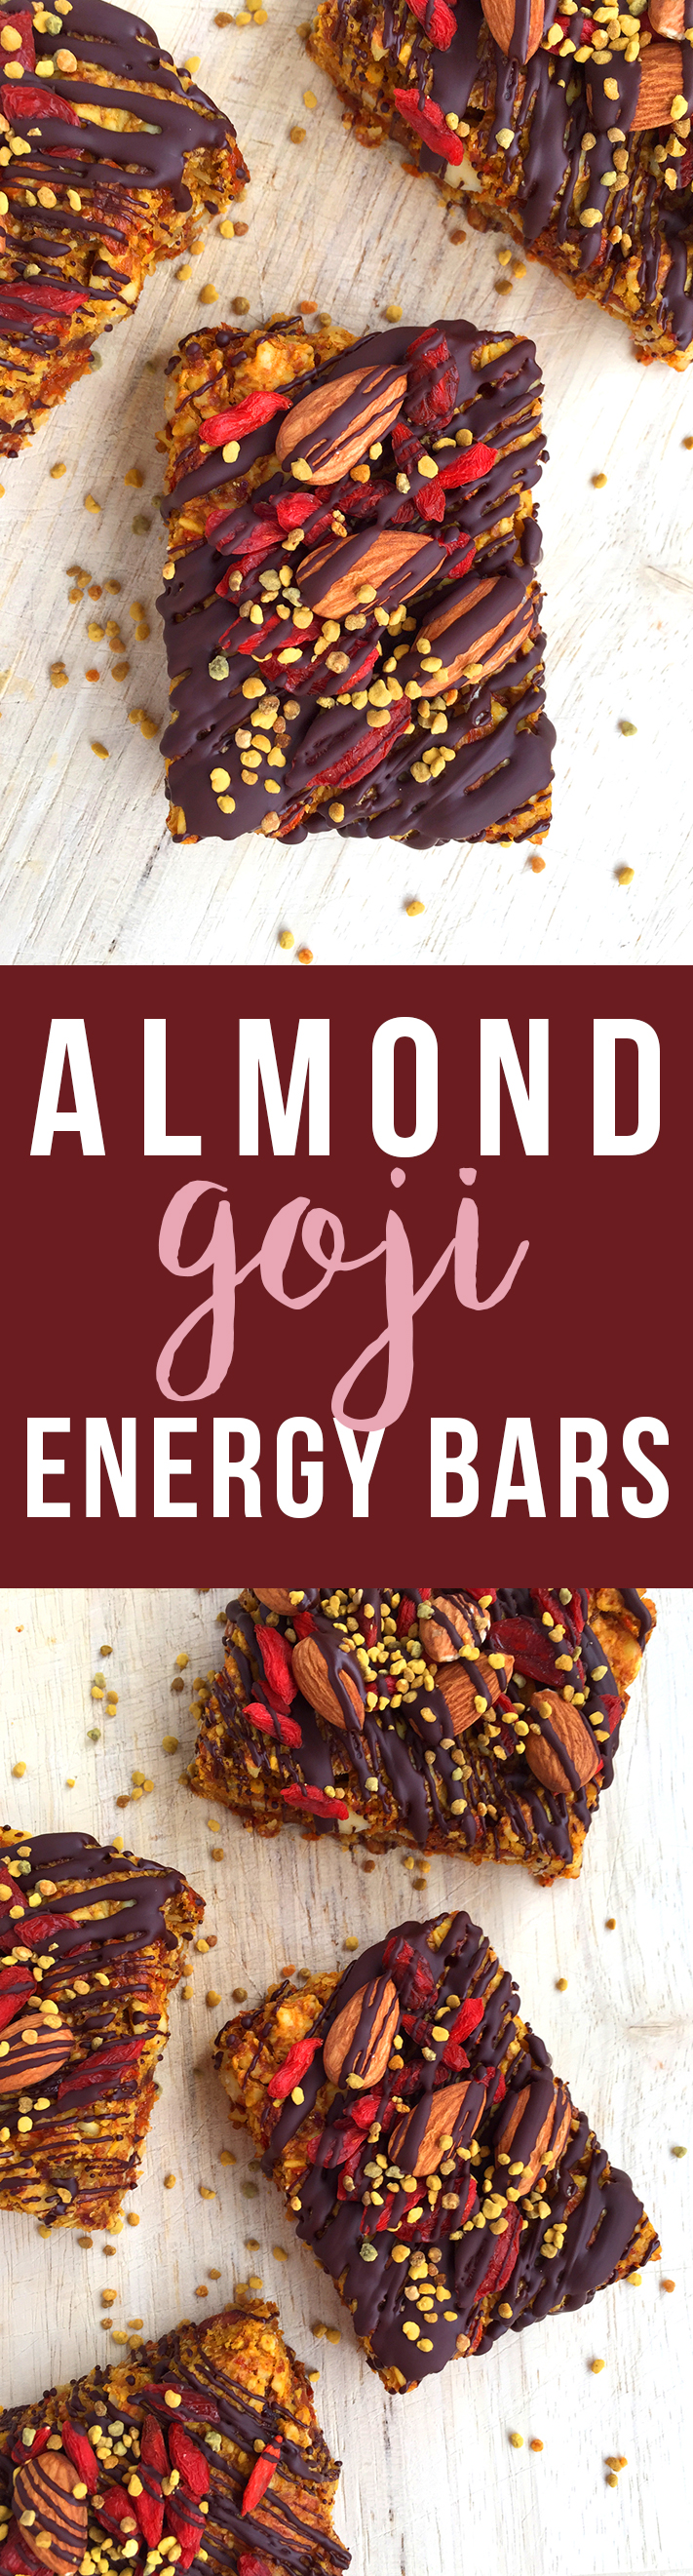 These grain-free Almond Goji Energy Bars are made of just nuts, fruit, coconut, eggs and love! (Drizzle with unsweetened chocolate if desired) | Fresh Planet Flavor data-recalc-dims=